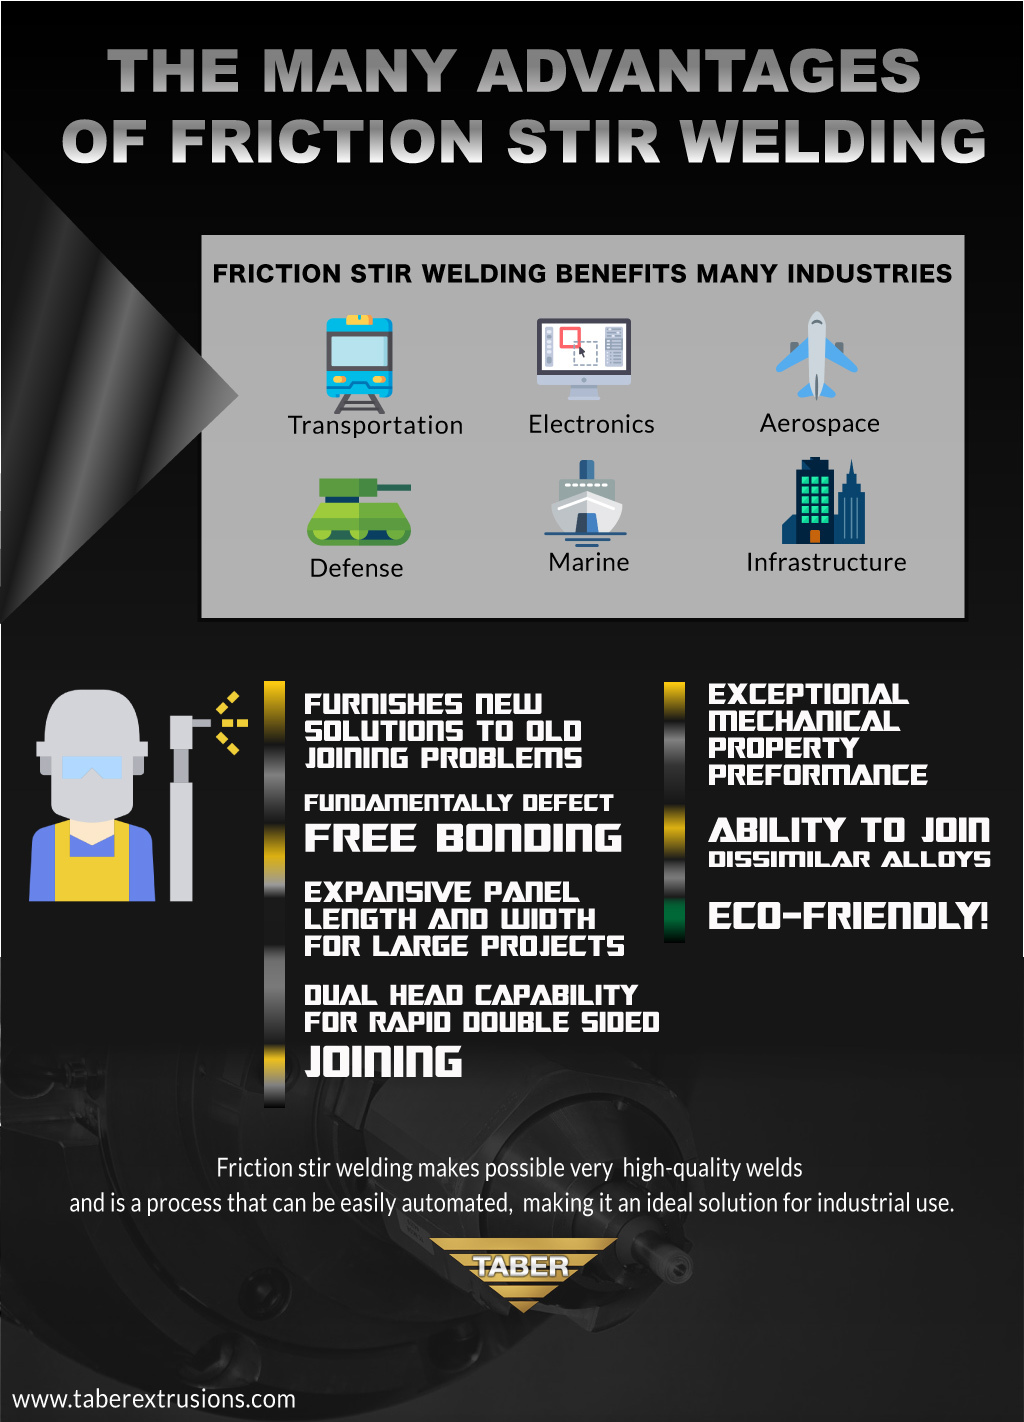 The many advantages of friction stir welding infographic